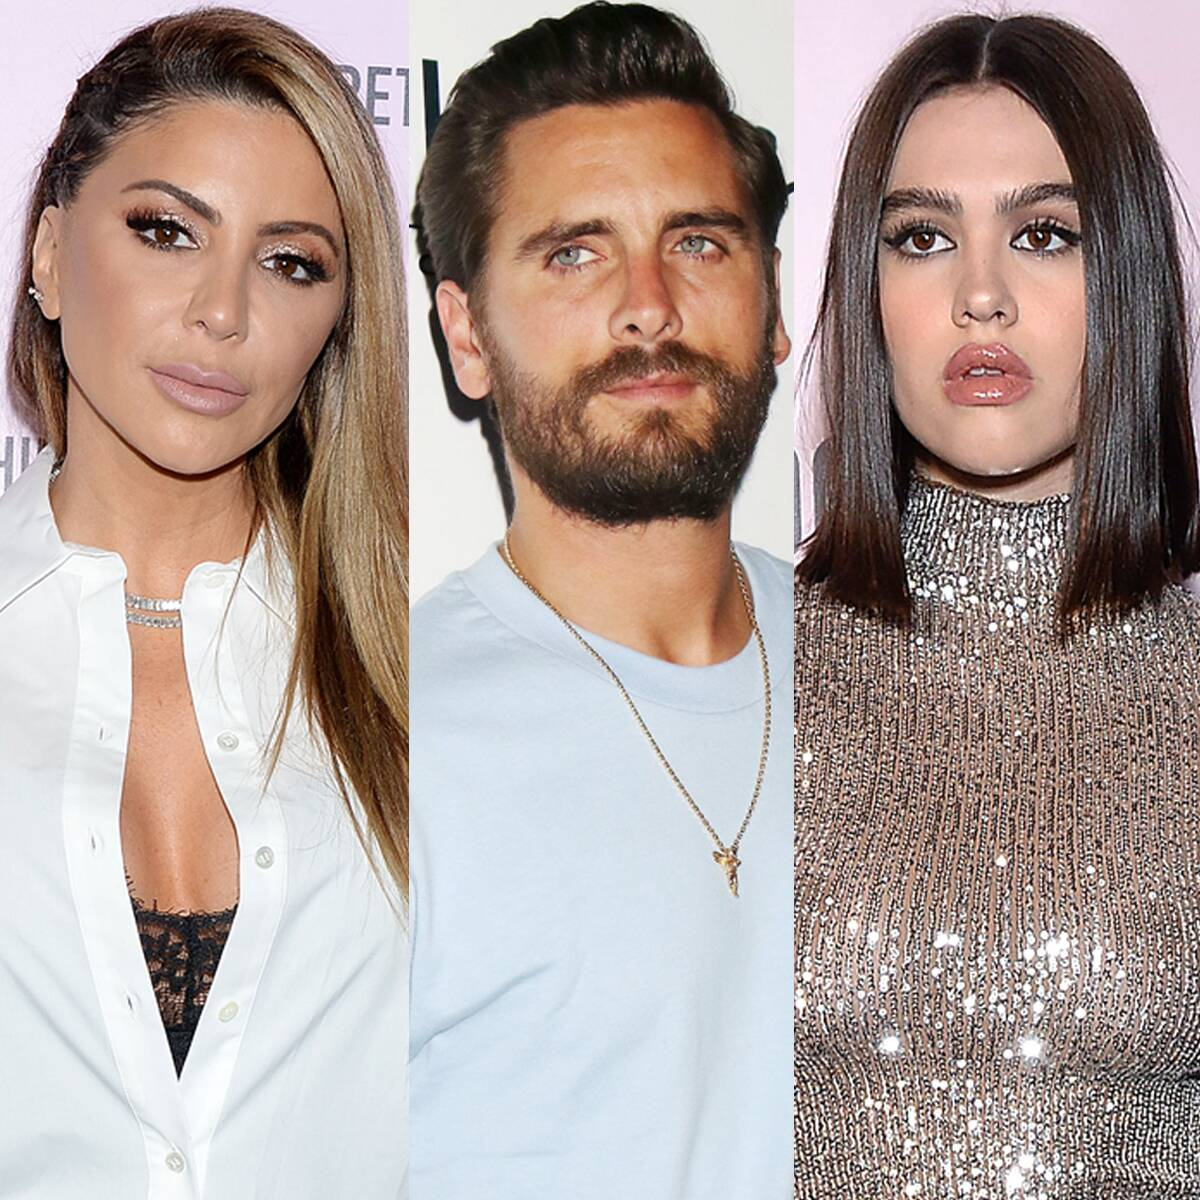 Scott Disick and Amelia Hamlin Have Lunch With Larsa Pippen